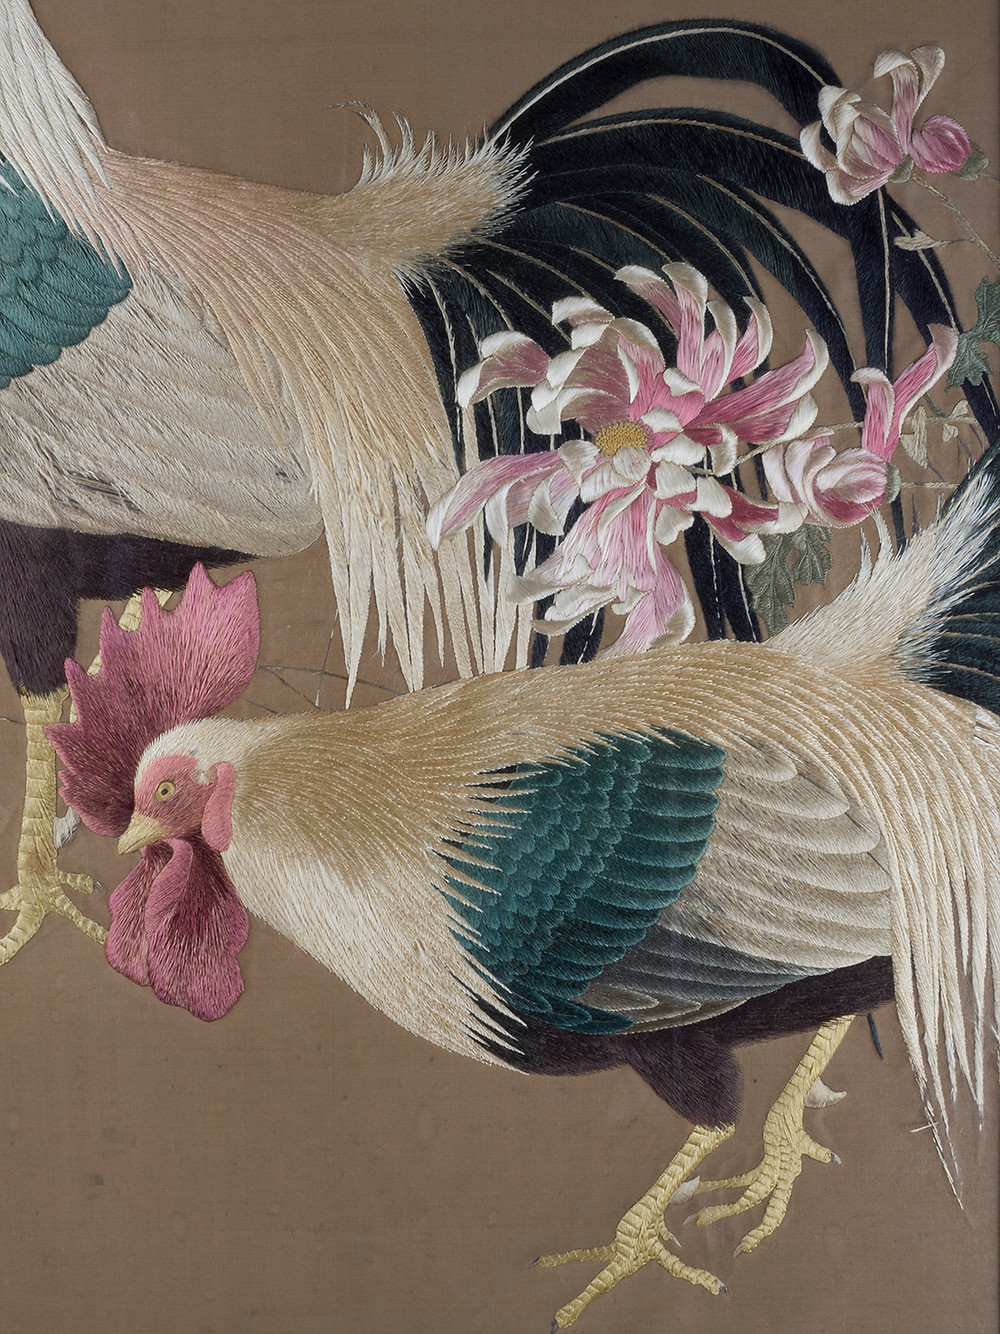 detail from a meiji period embroidery showing the head of a chicken, the fleshy comb and wattle realistically rendered